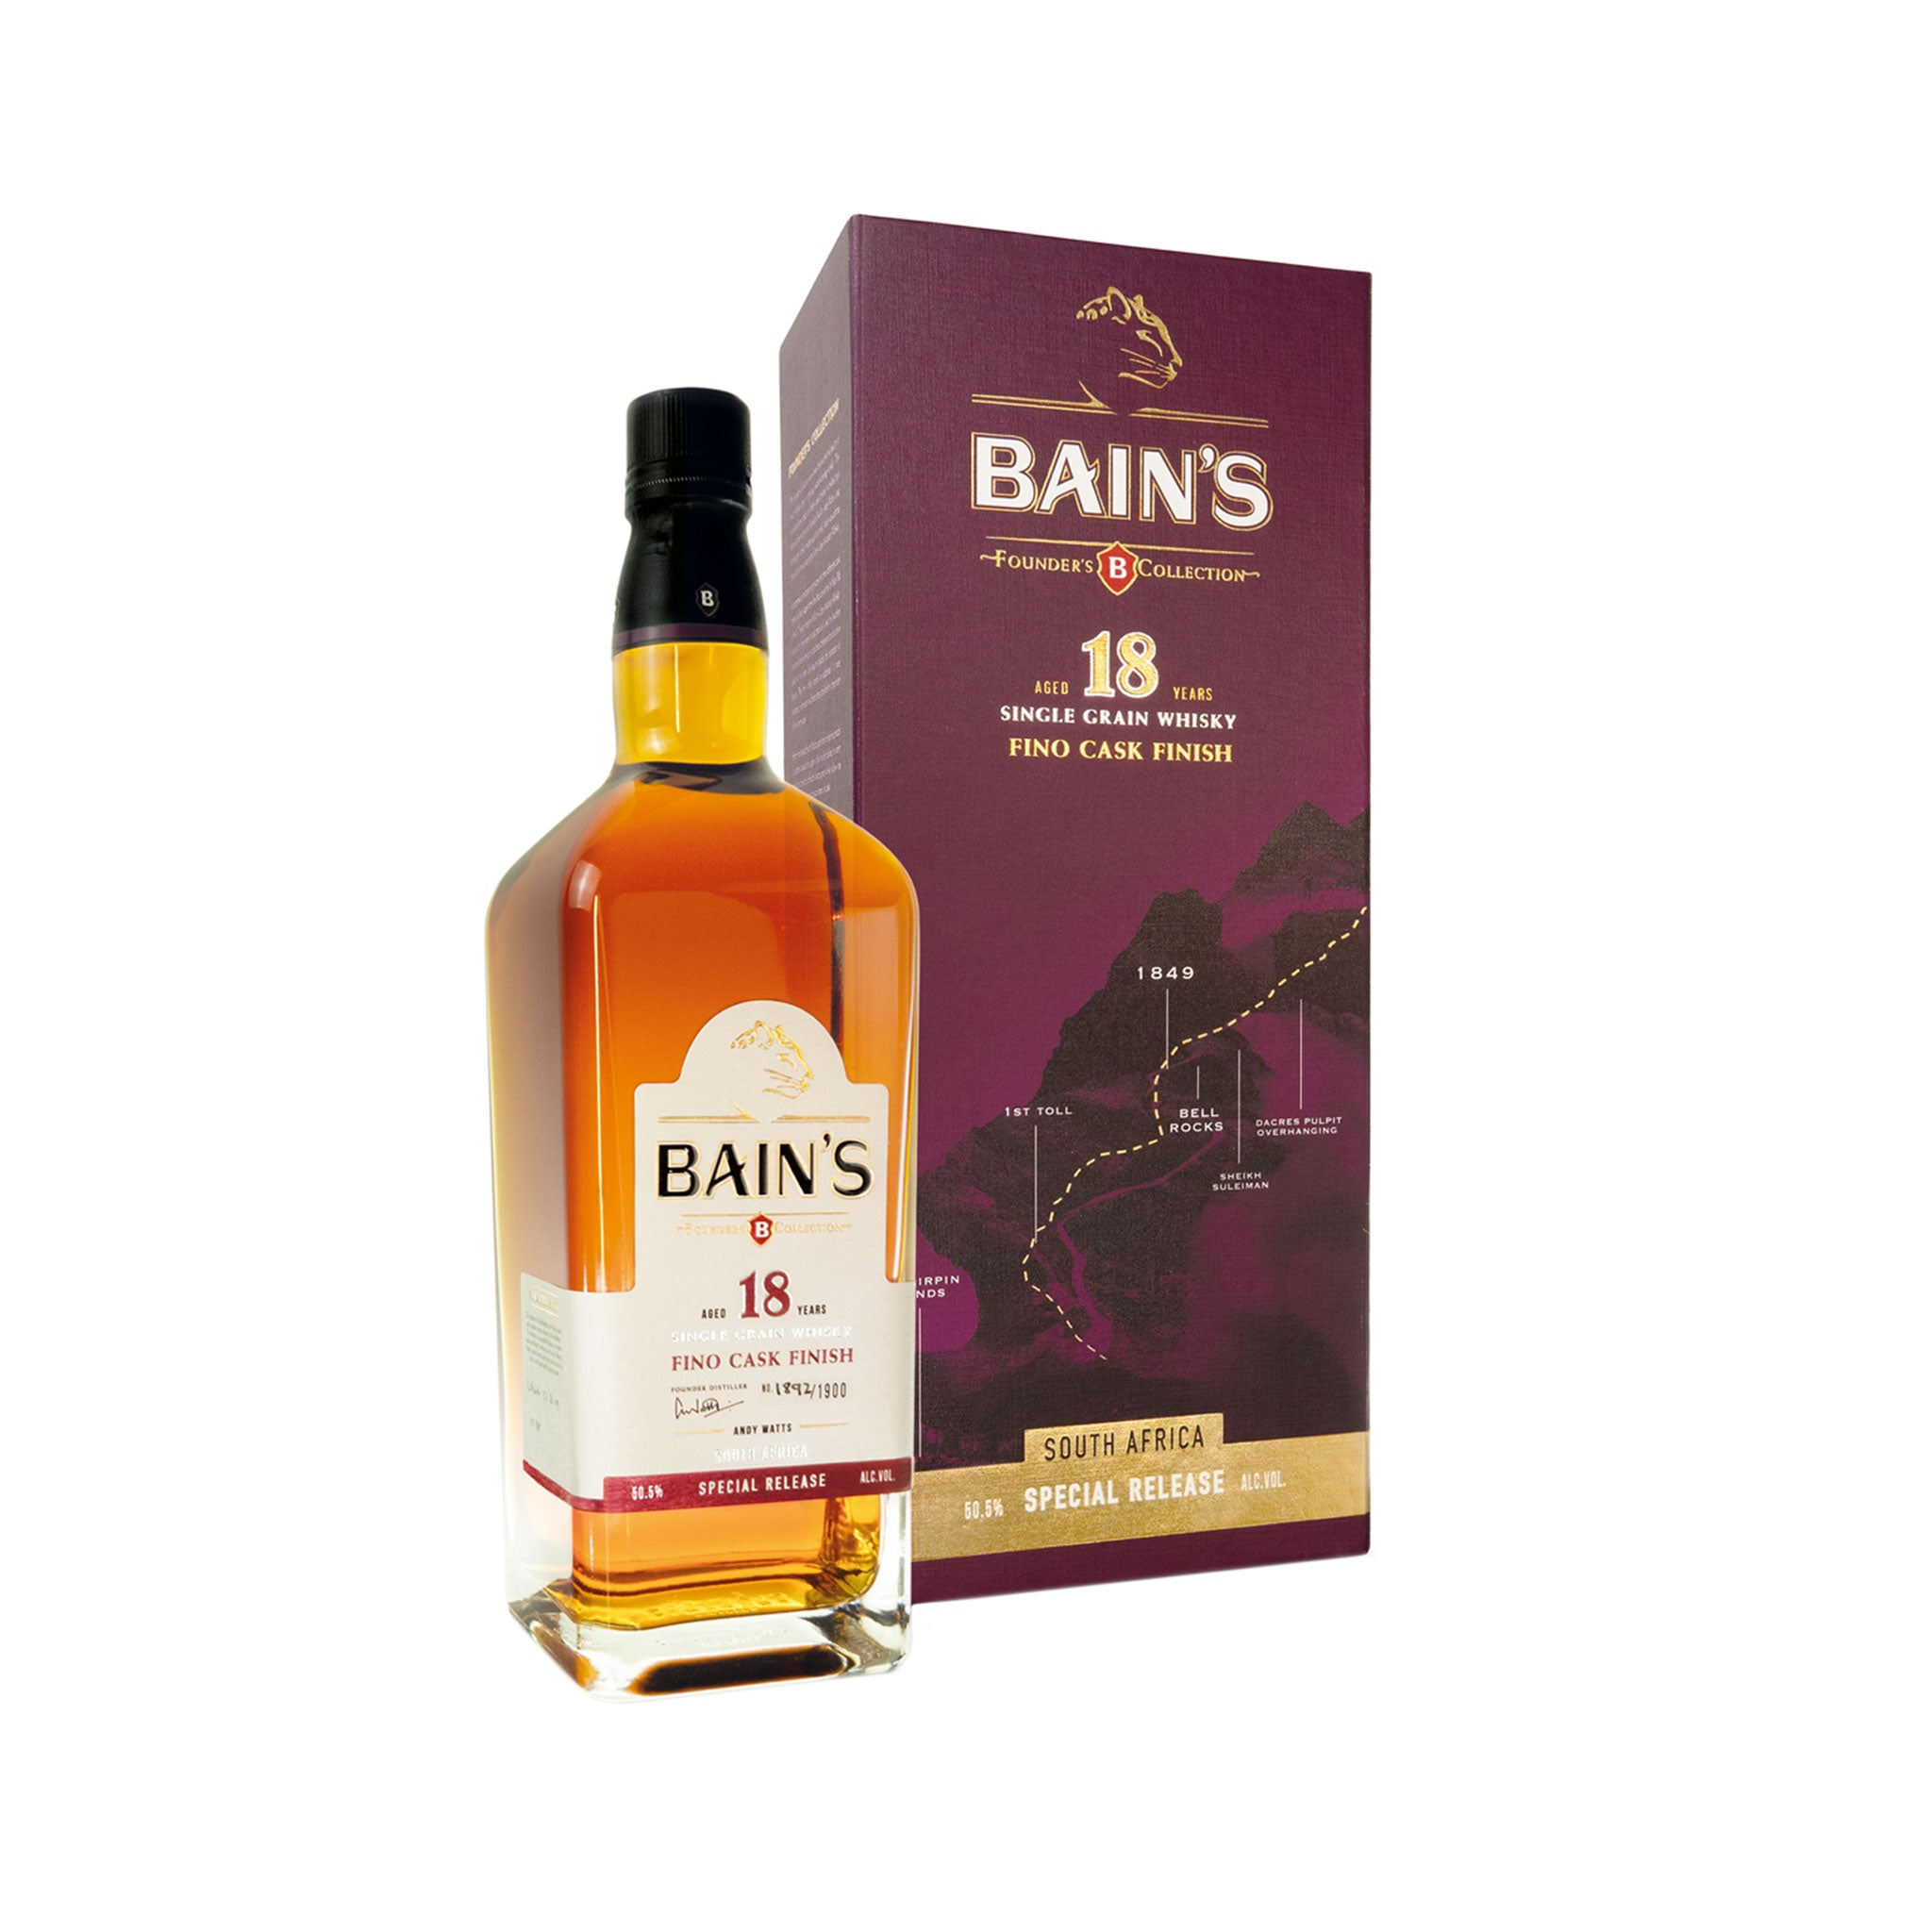 Bain's Founders Collection Whisky 18 Year Old Fino Cask Finish